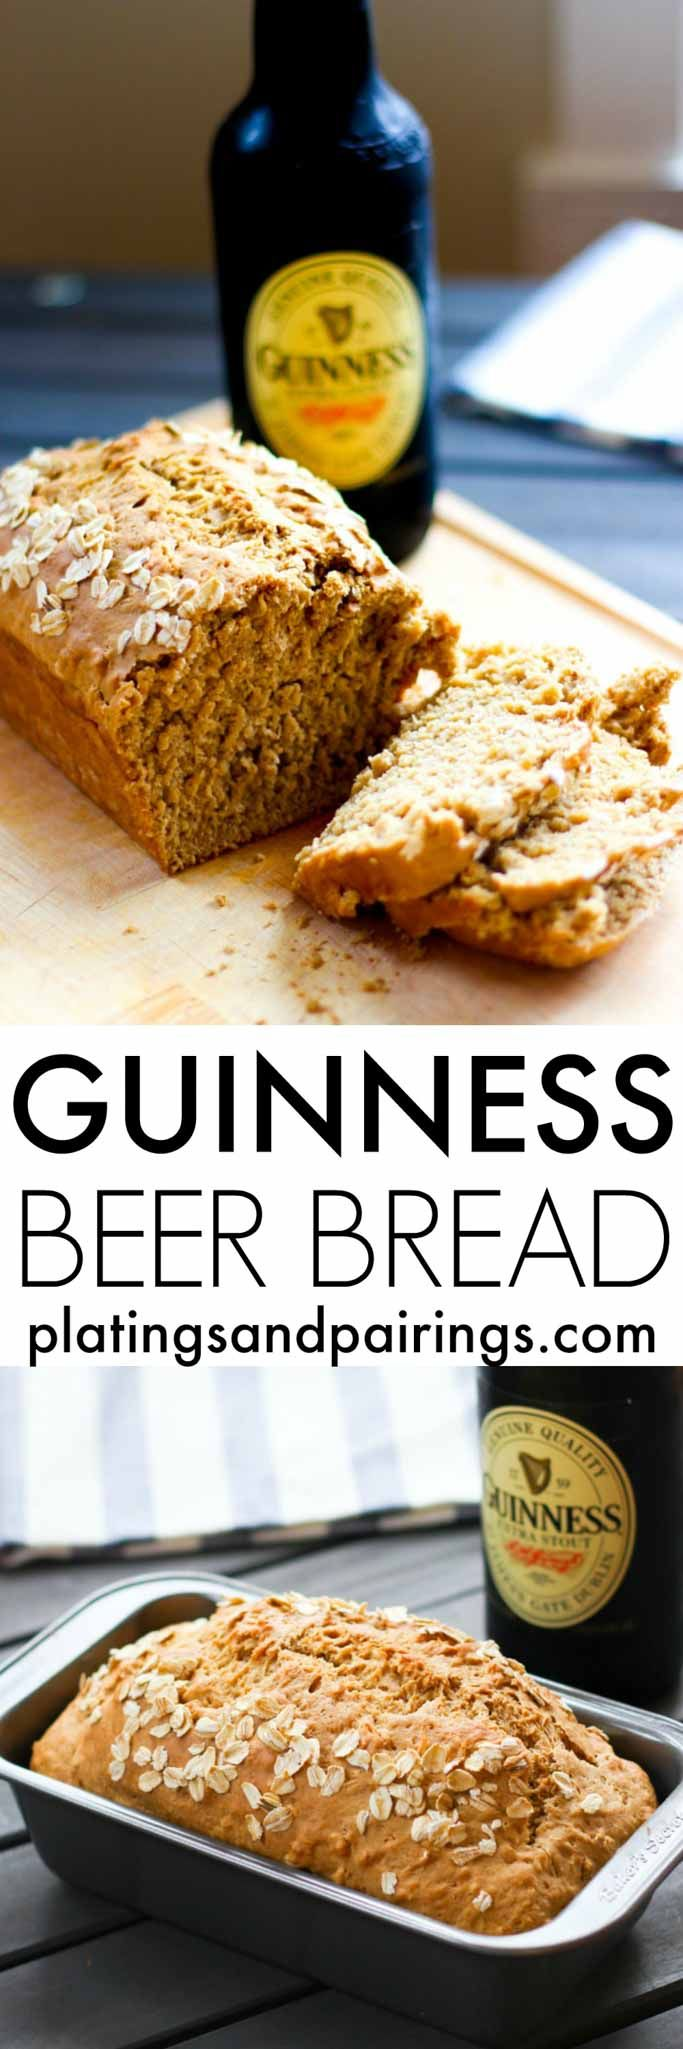 Guinness Beer Bread - Easy to make with no rising time. | platingsandpairings.com Come and see our new website at bakedcomfortfood.com!